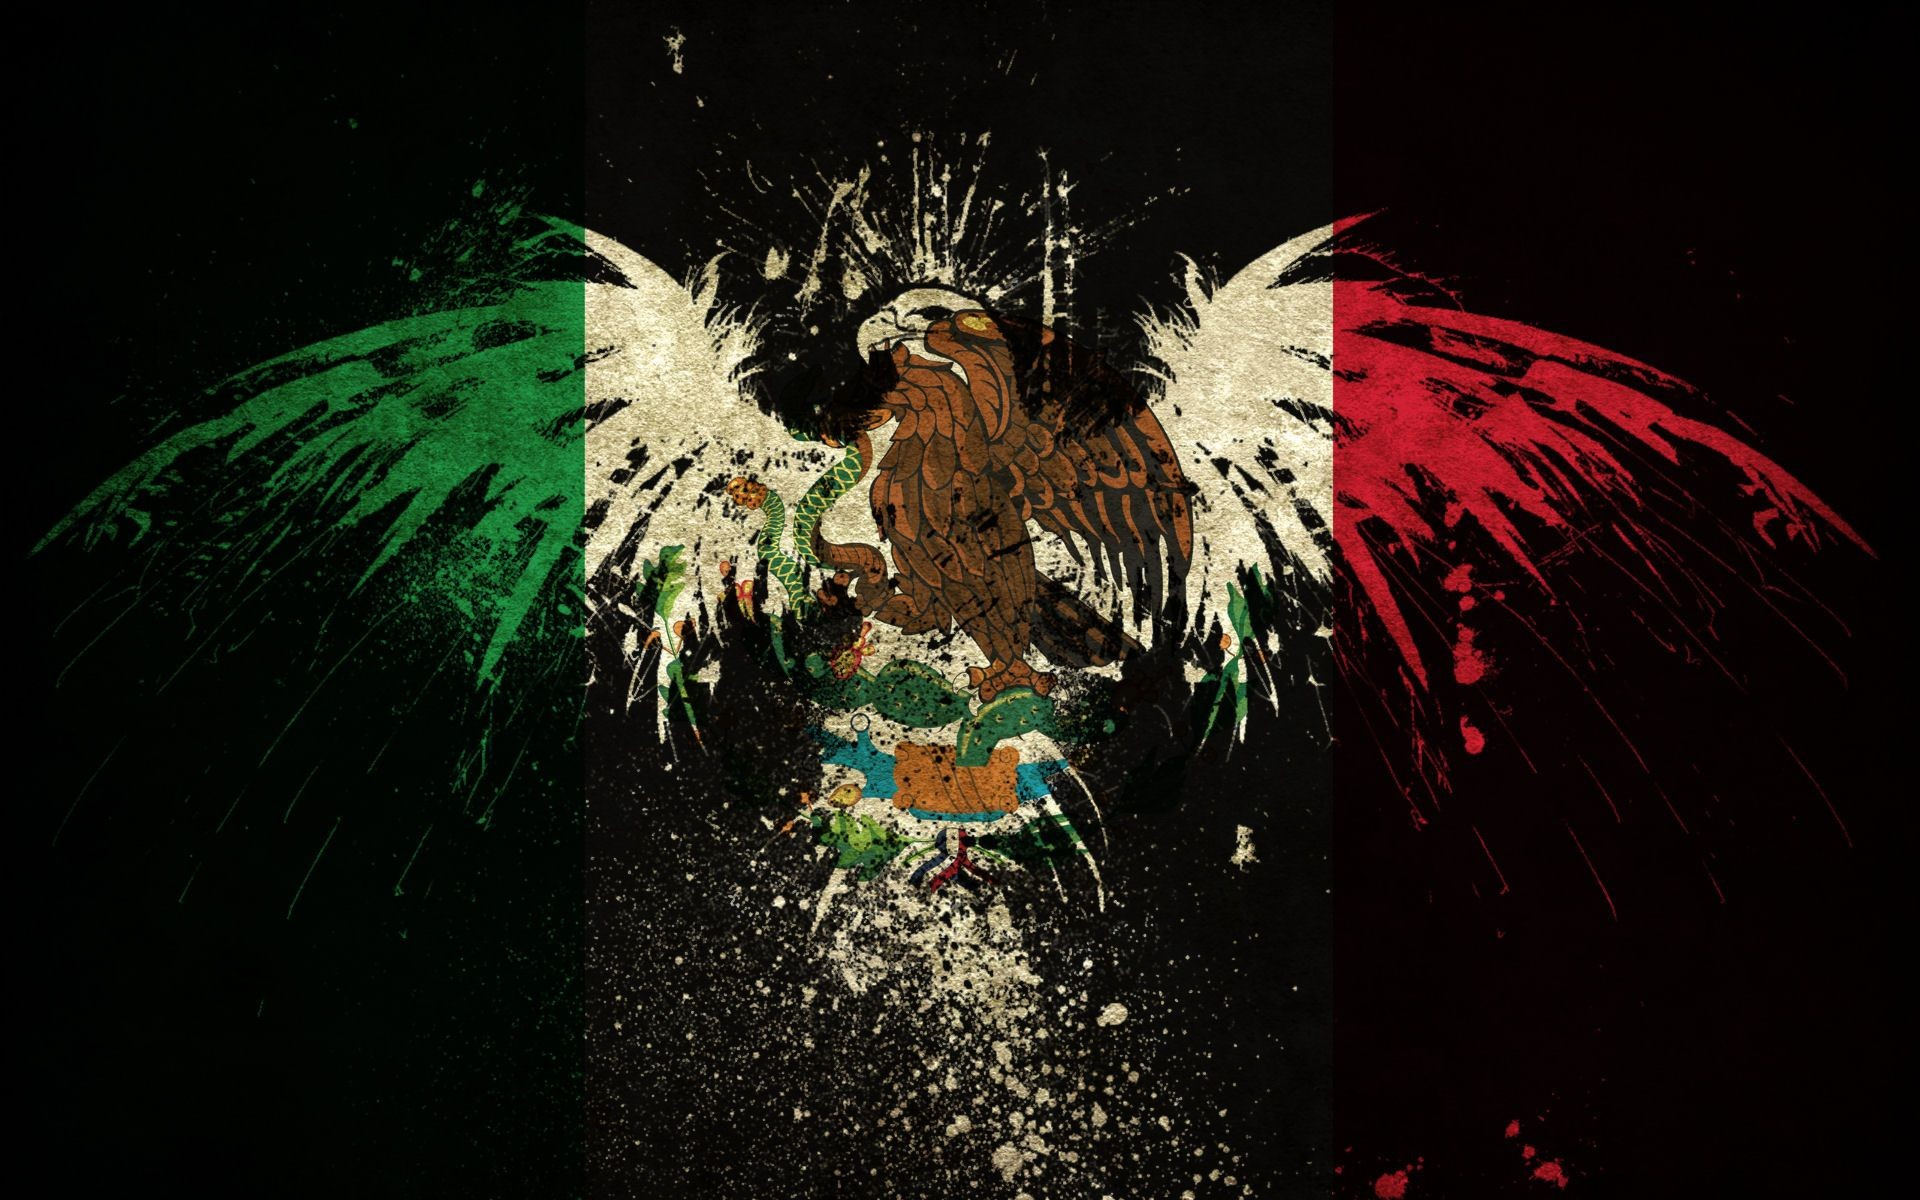 Amazing Mexico wallpaper x | HD Wallpapers | Pinterest | Wallpaper and City  wallpaper